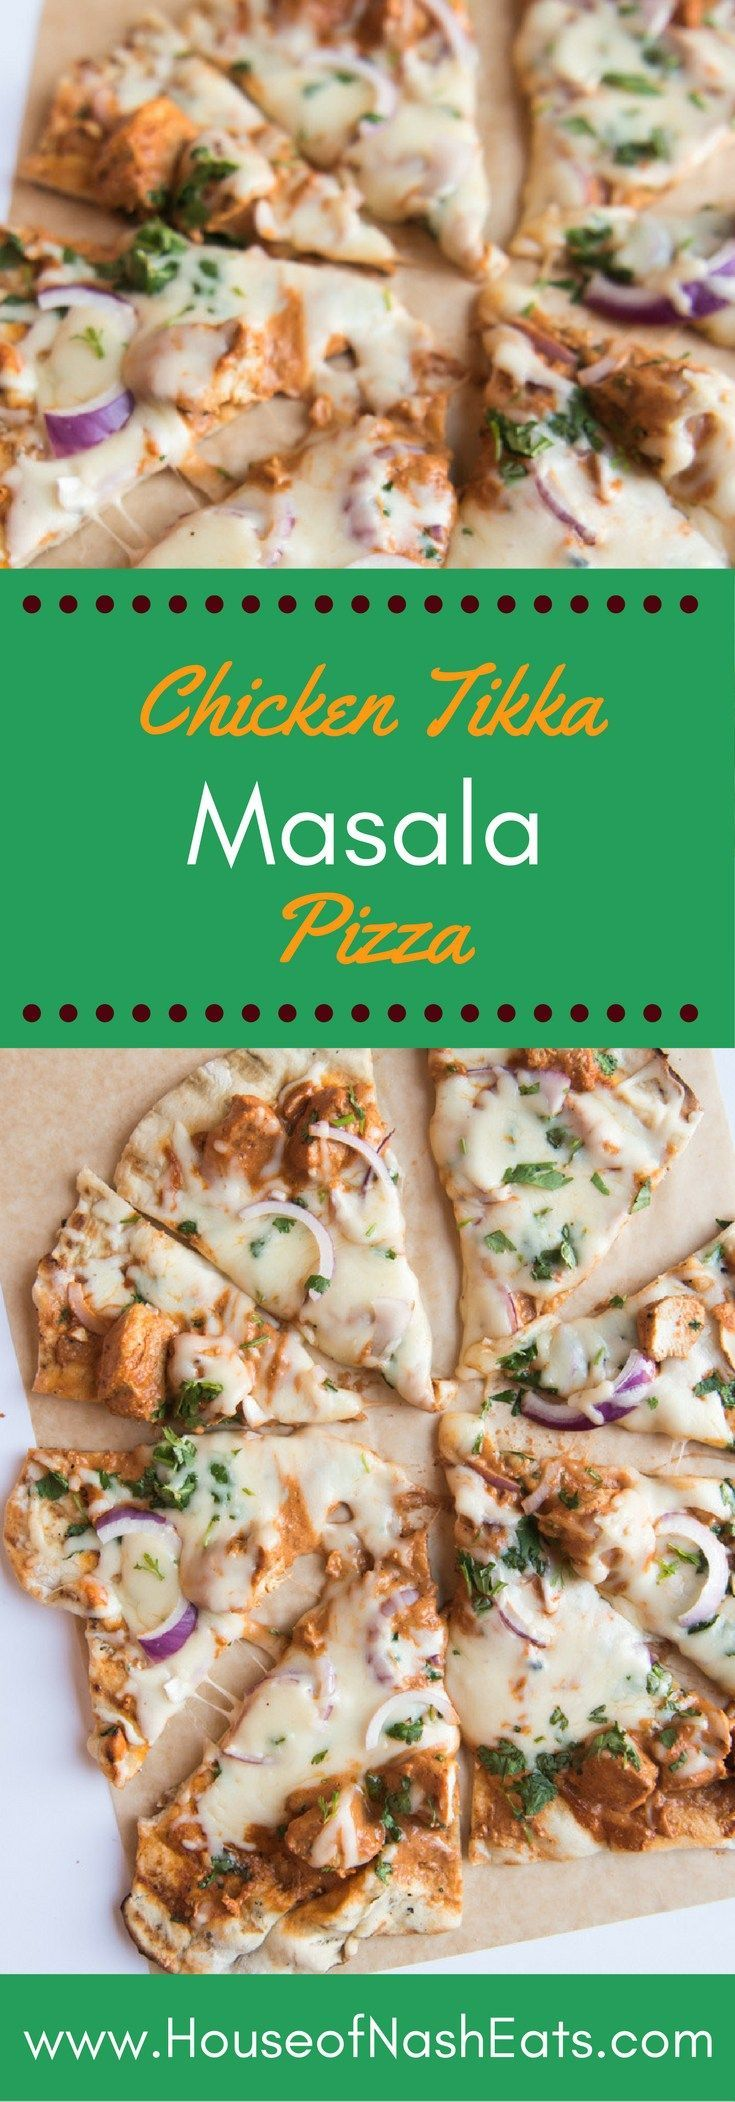 This Chicken Tikka Masala Pizza is a fusion of two takeout favorites. The rich…